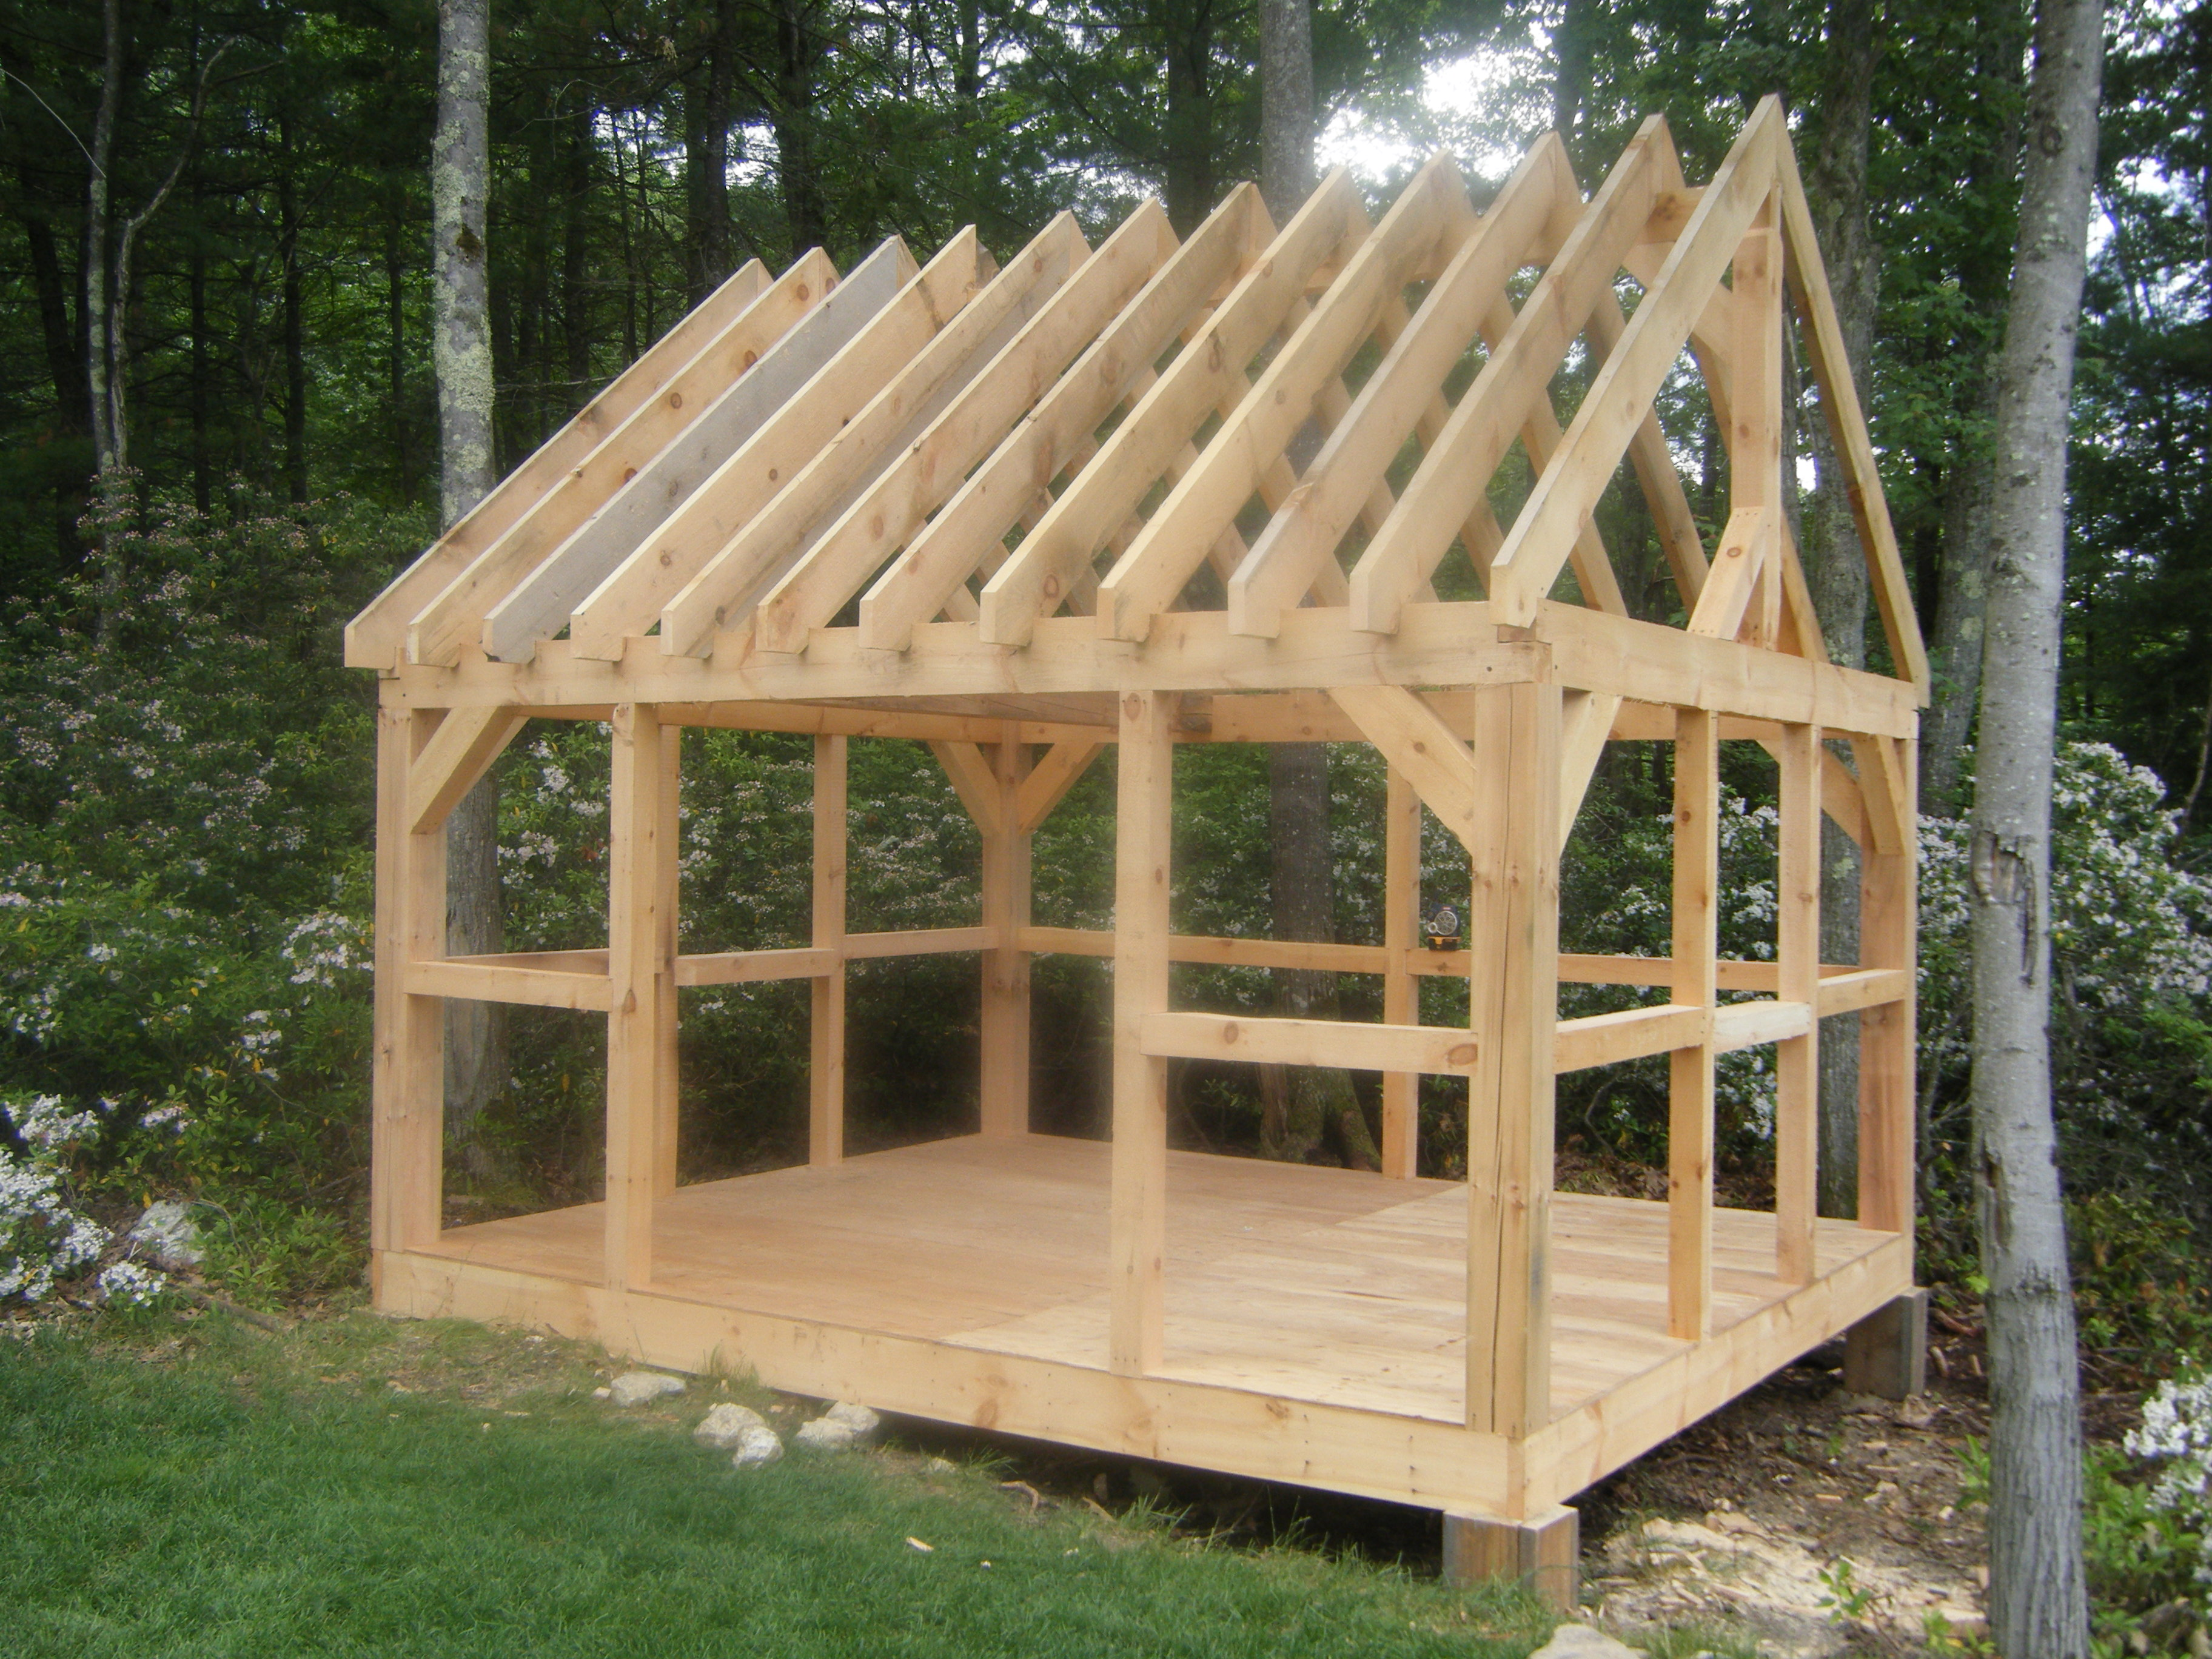 How to build a pole shed free plans quick woodworking How to build a small pole barn